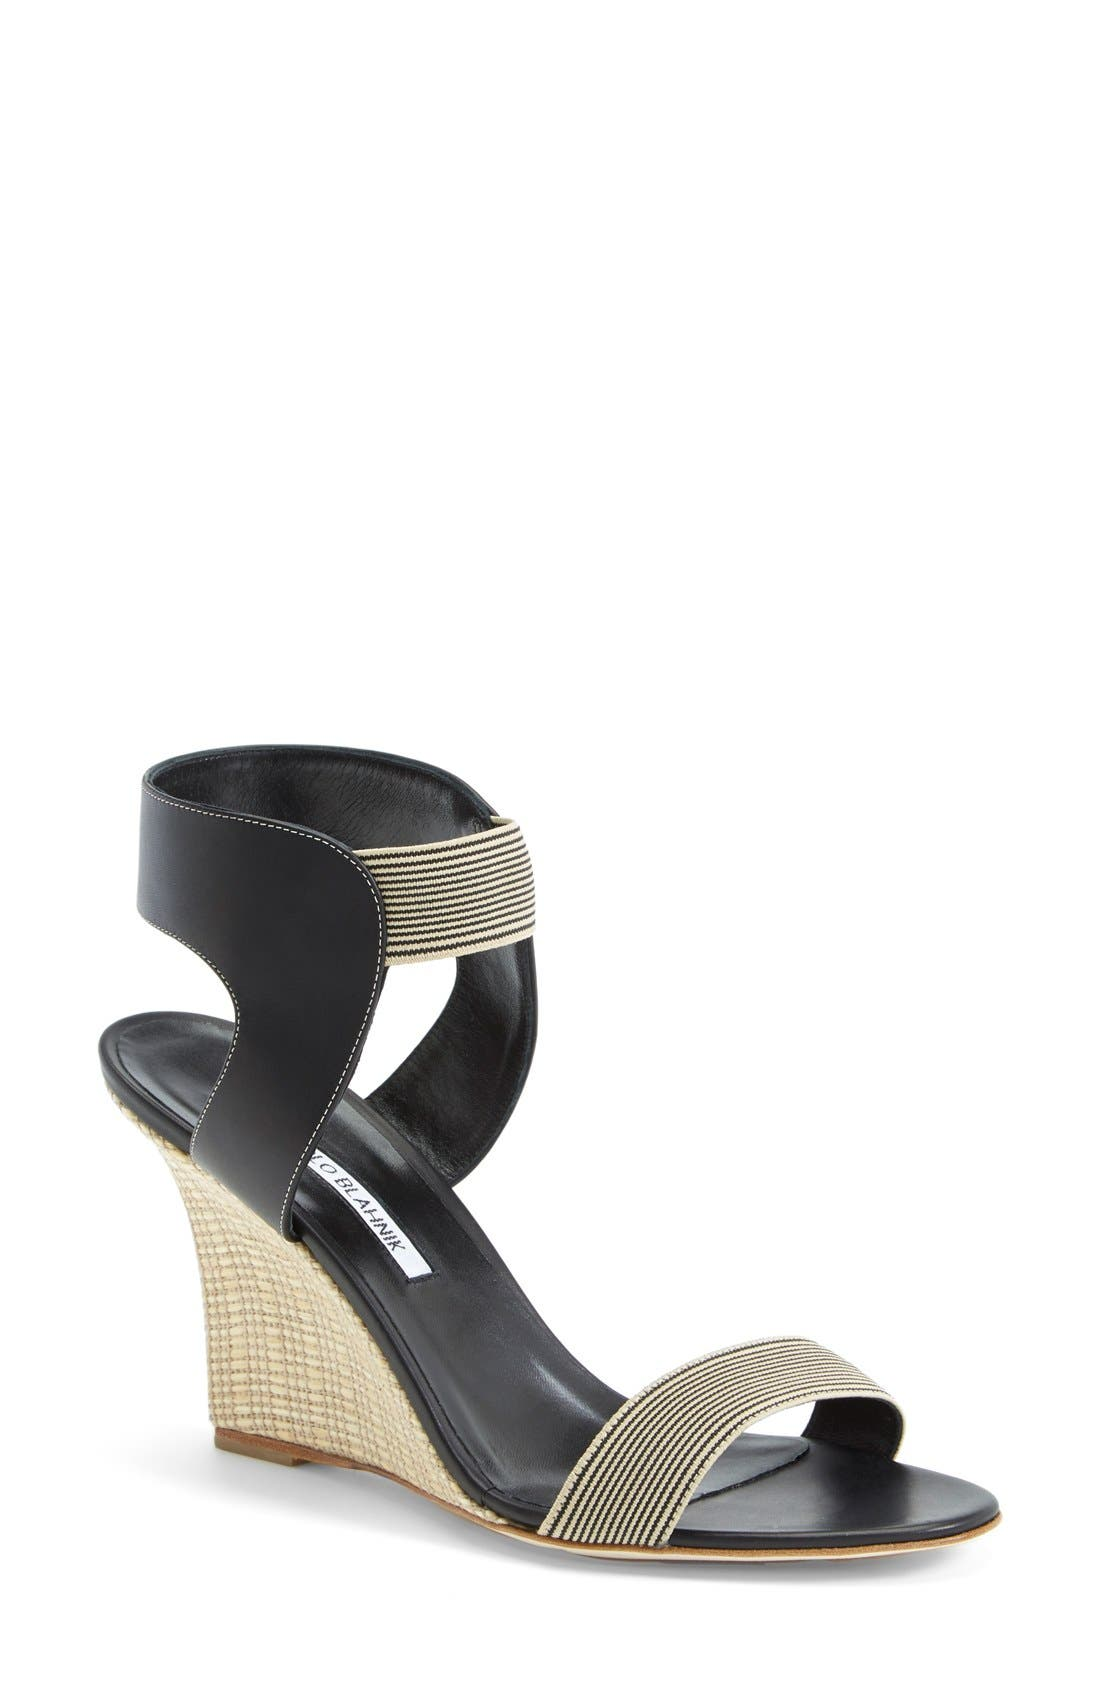 Alternate Image 1 Selected - Manolo Blahnik Ankle Strap Wedge Sandal (Women)